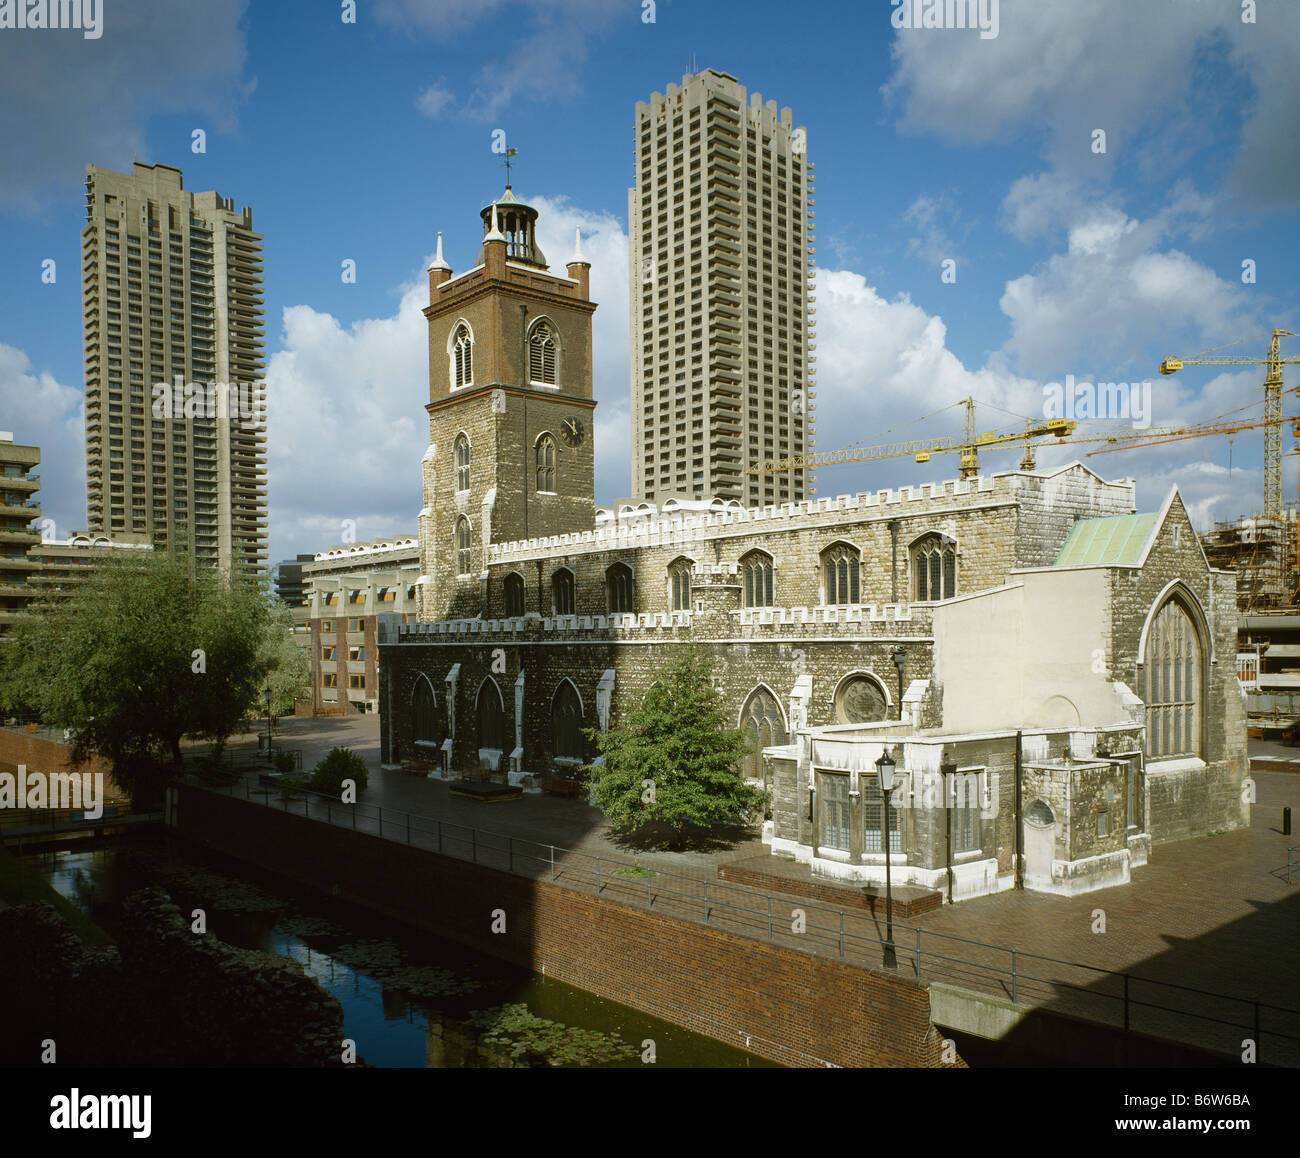 Barbican & St Giles - Stock Image